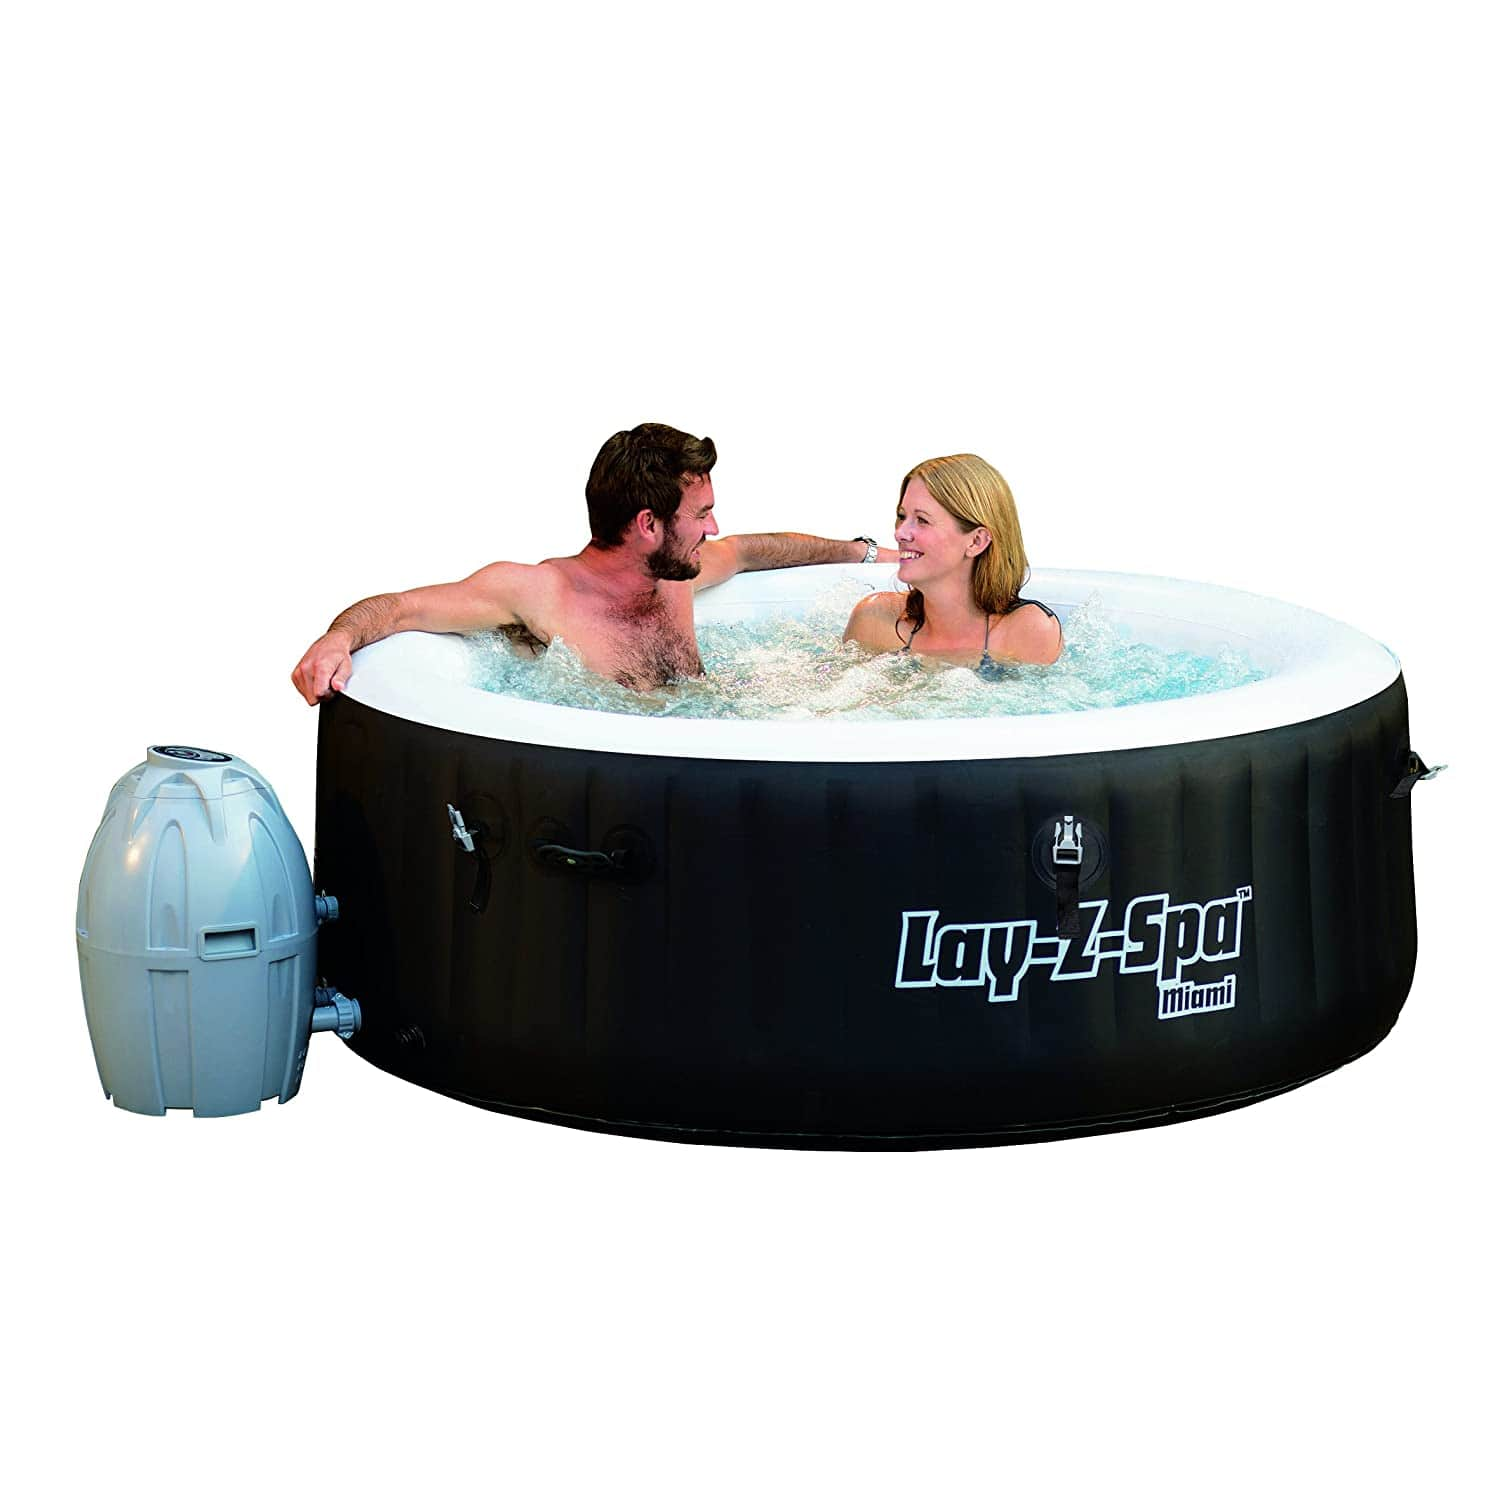 Bestway SaluSpa Miami Inflatable Hot Tub, 4-Person AirJet Spa - $259.99